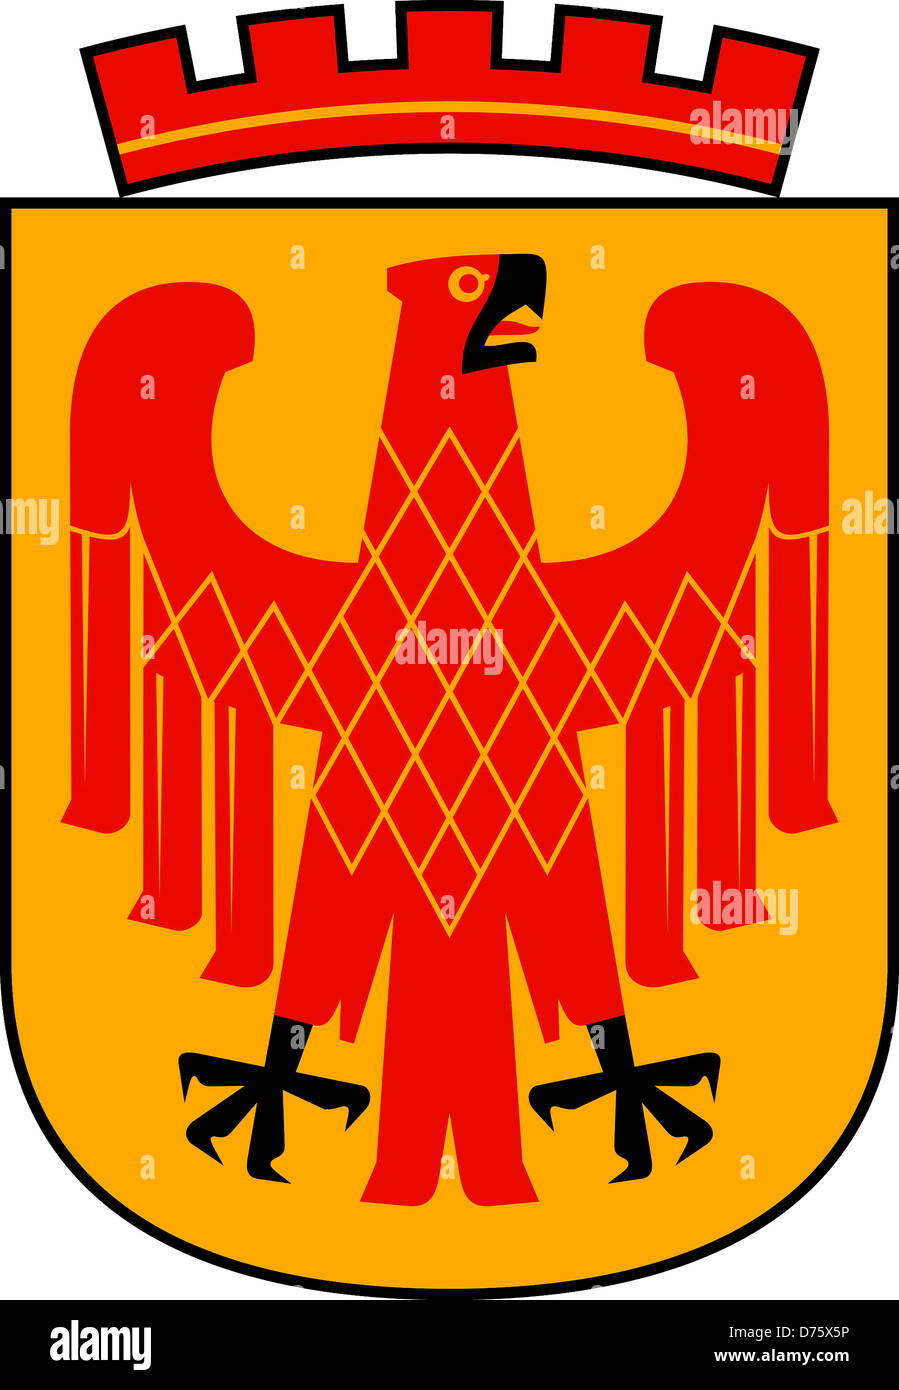 Coat of arms of the Capital city Potsdam of Brandenburg. - Stock Image